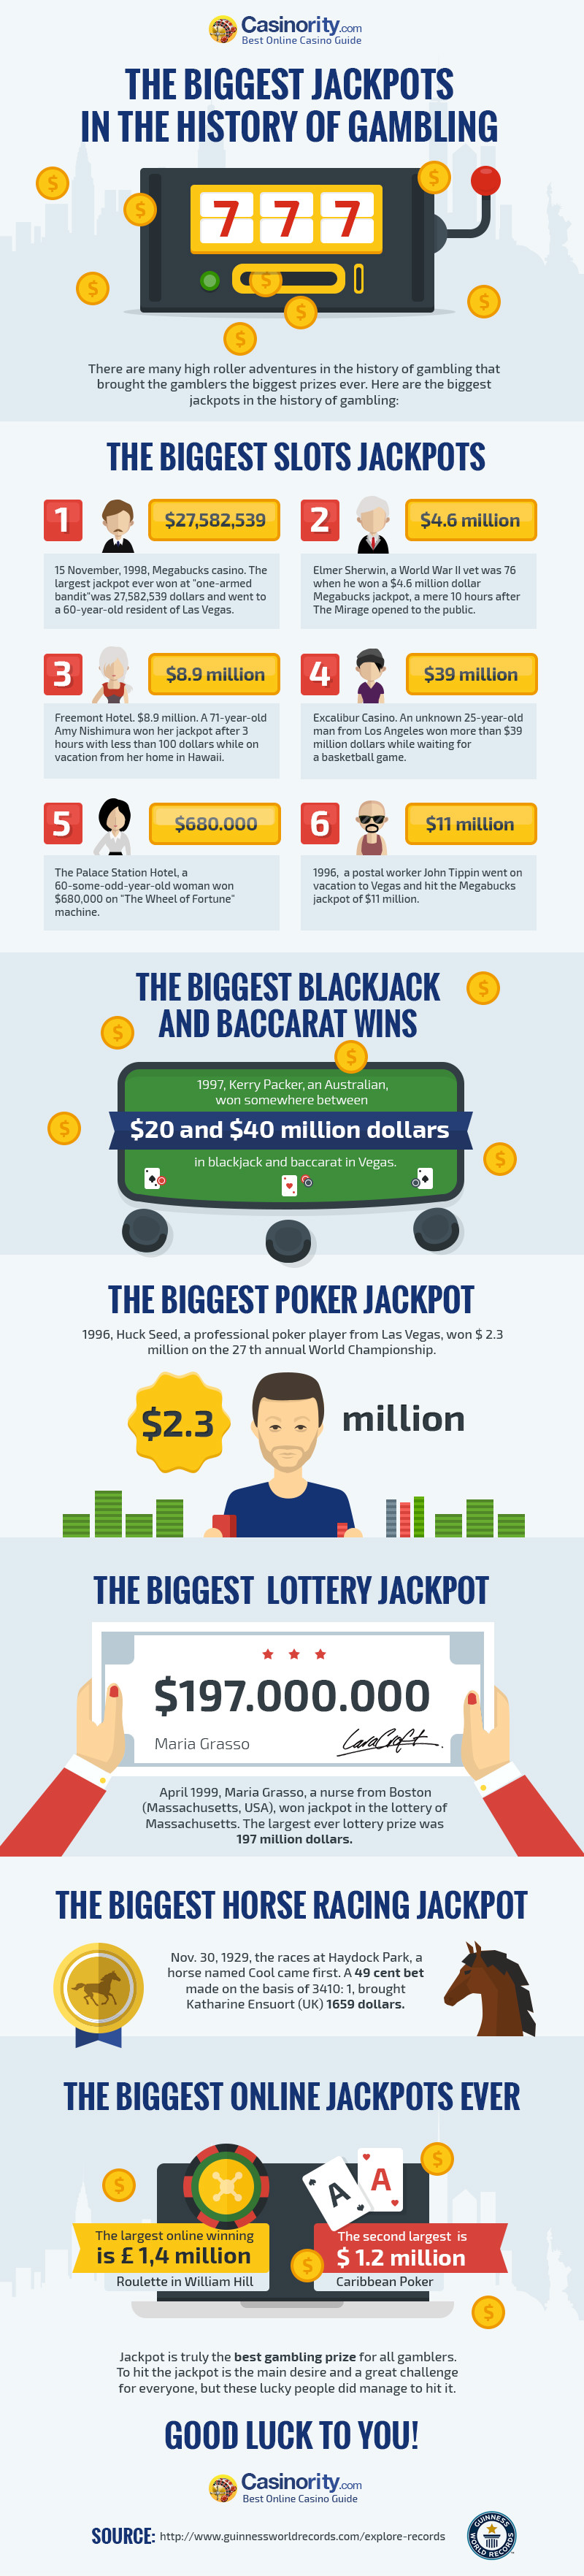 Biggest Jackpots in the History of Gambling [Infographic]